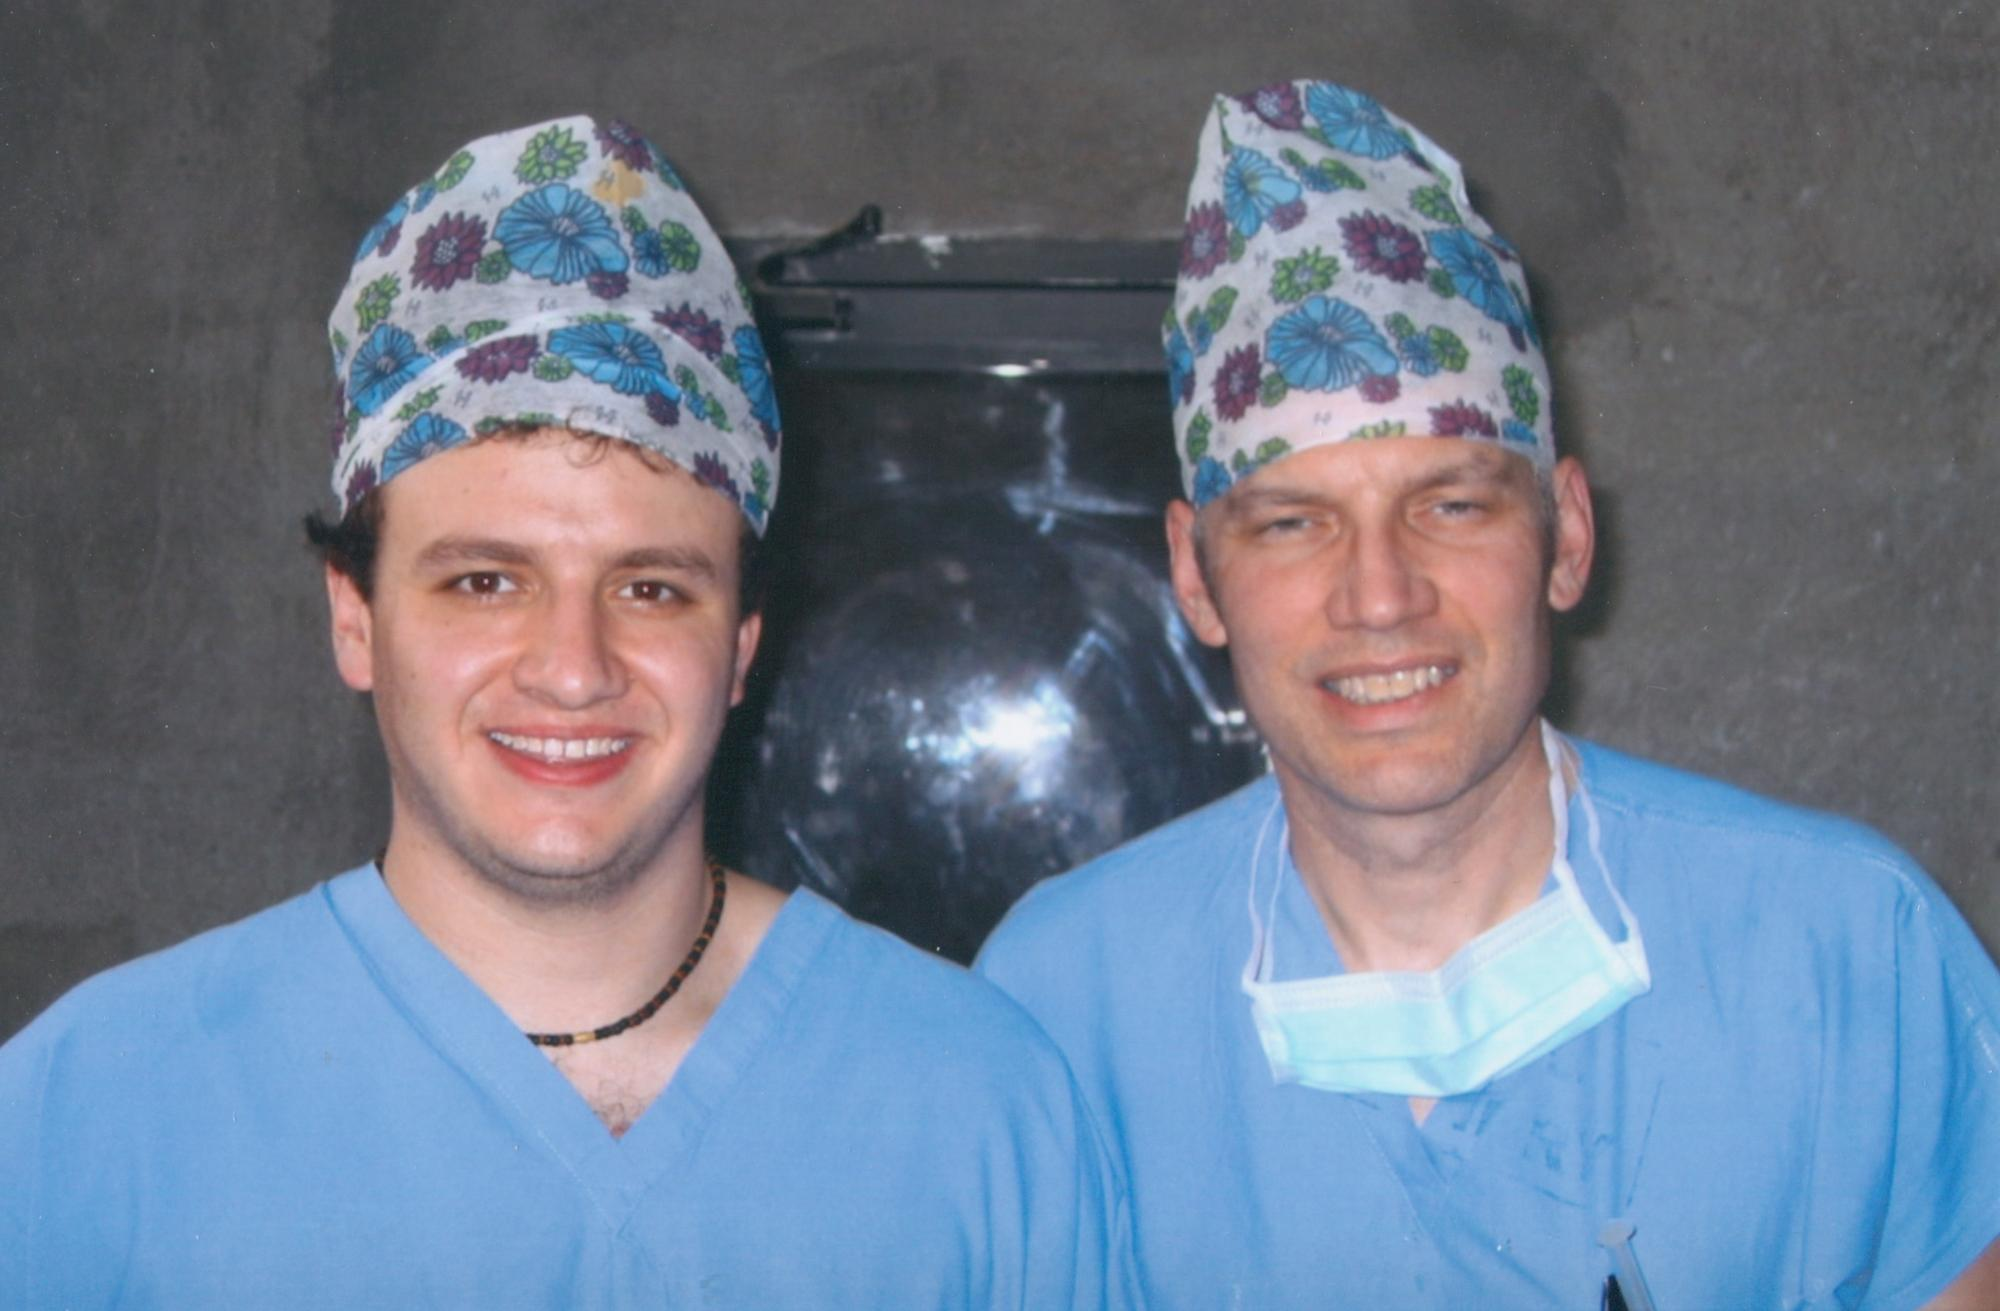 Dr_Jon_Stock_and_team_member_Feb_2003_image51.jpg